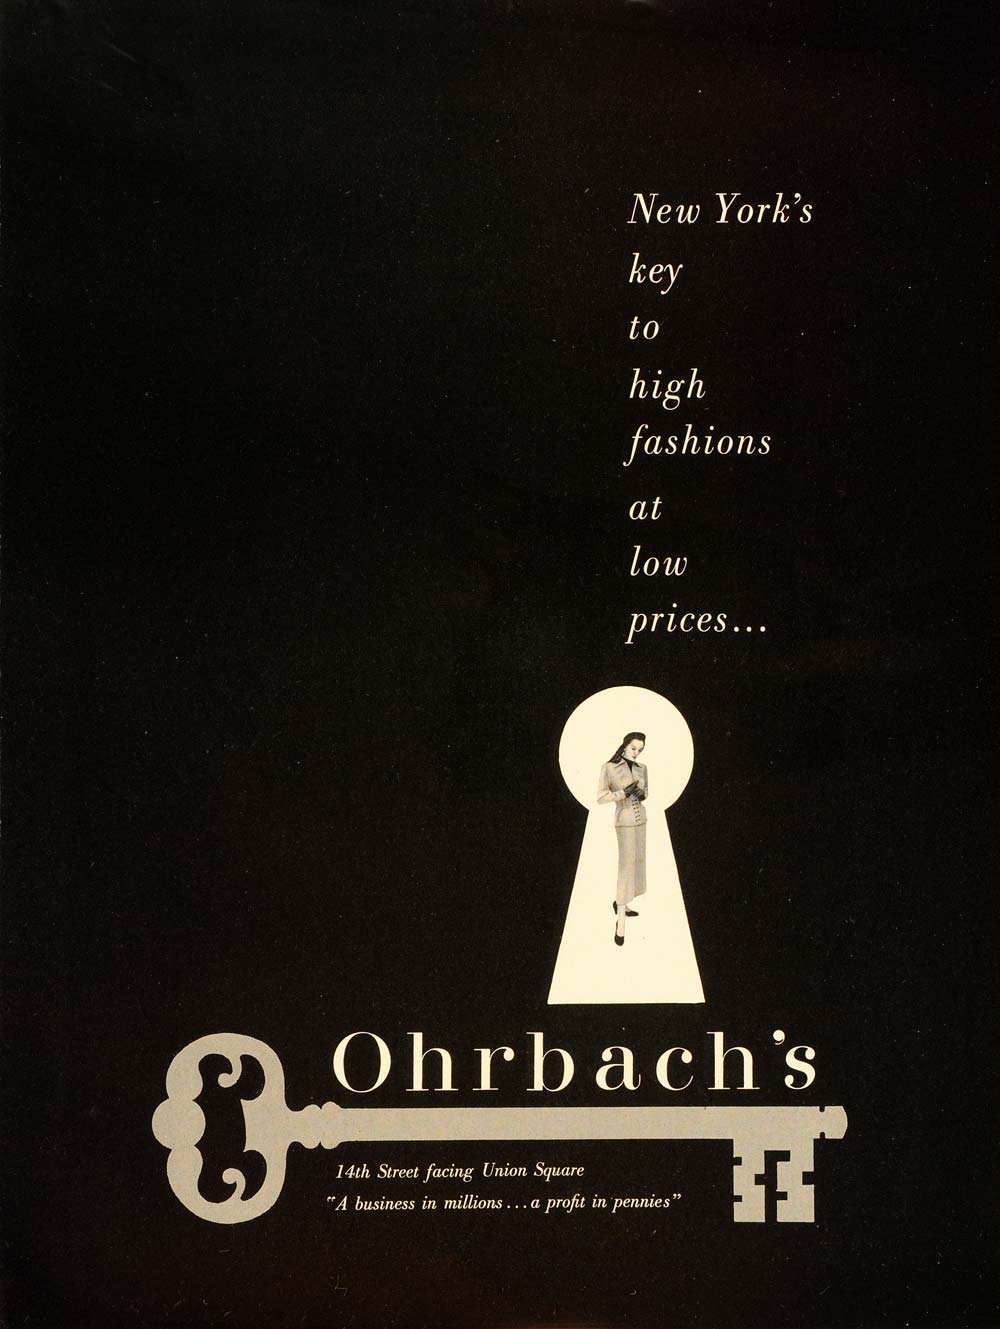 1948 Ad Vintage Ohrbach's Department Store New York City 14th St. Key Keyhole